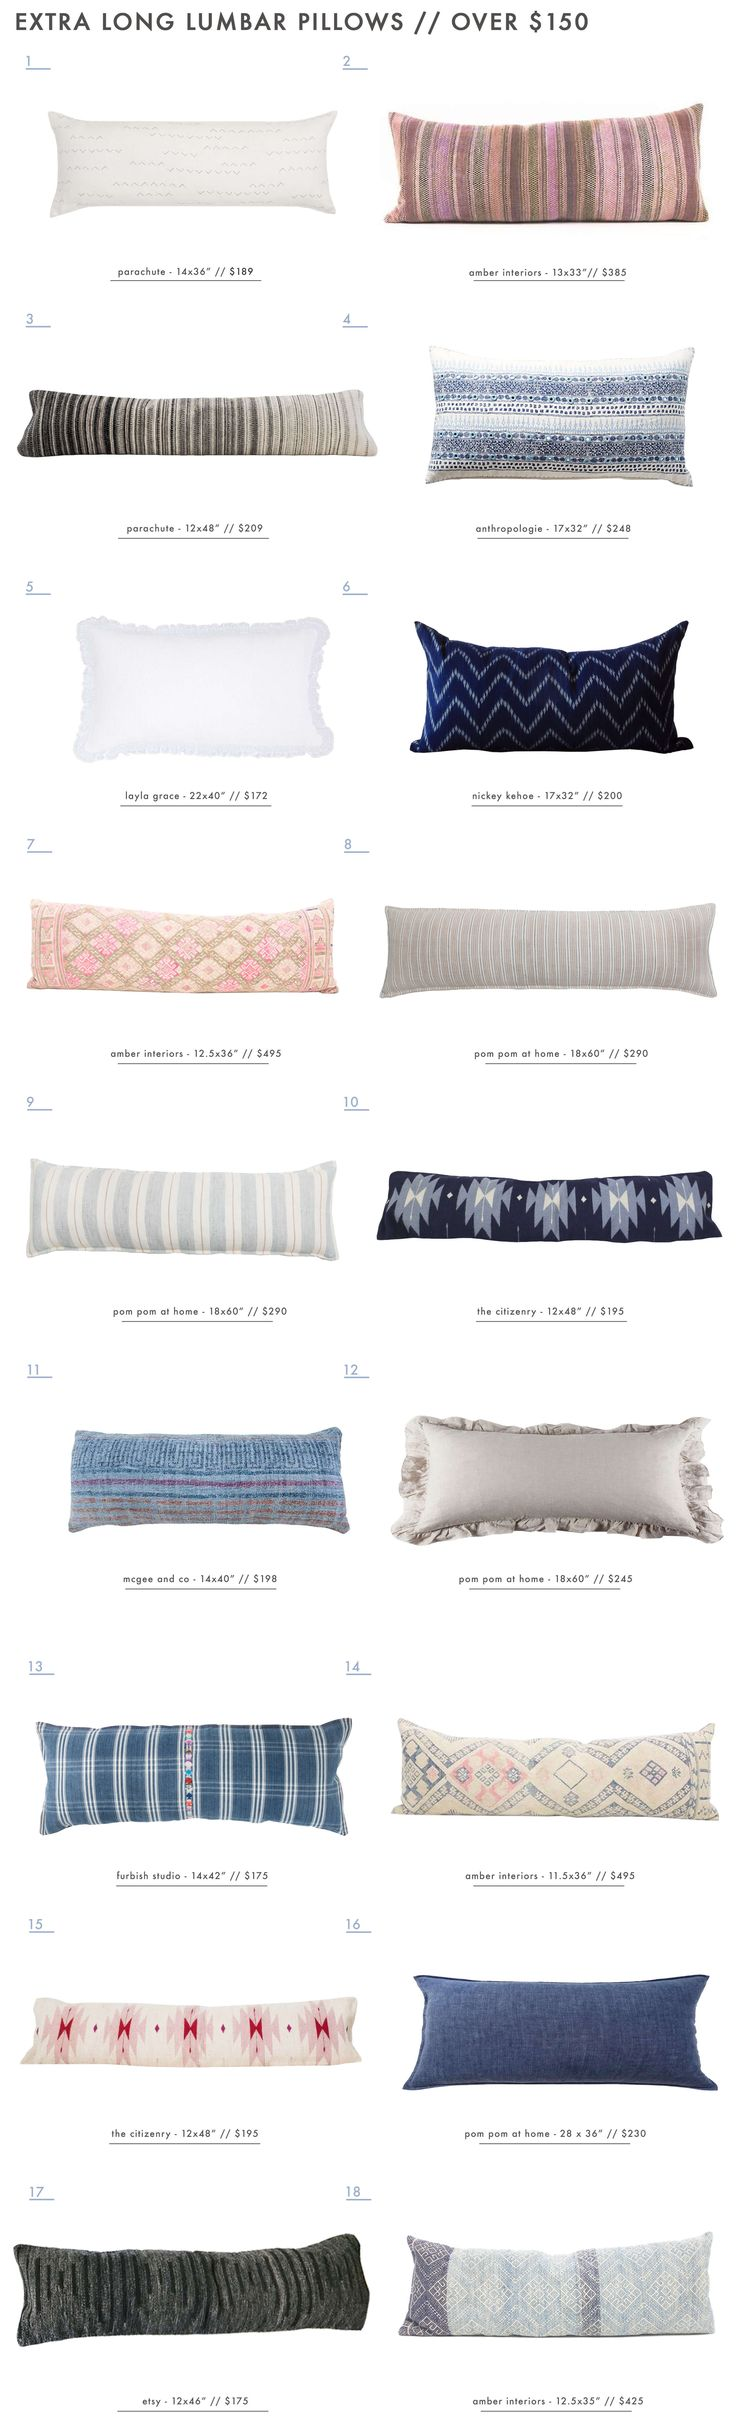 Our Extra Long Lumbar Pillow Roundup - Over $150